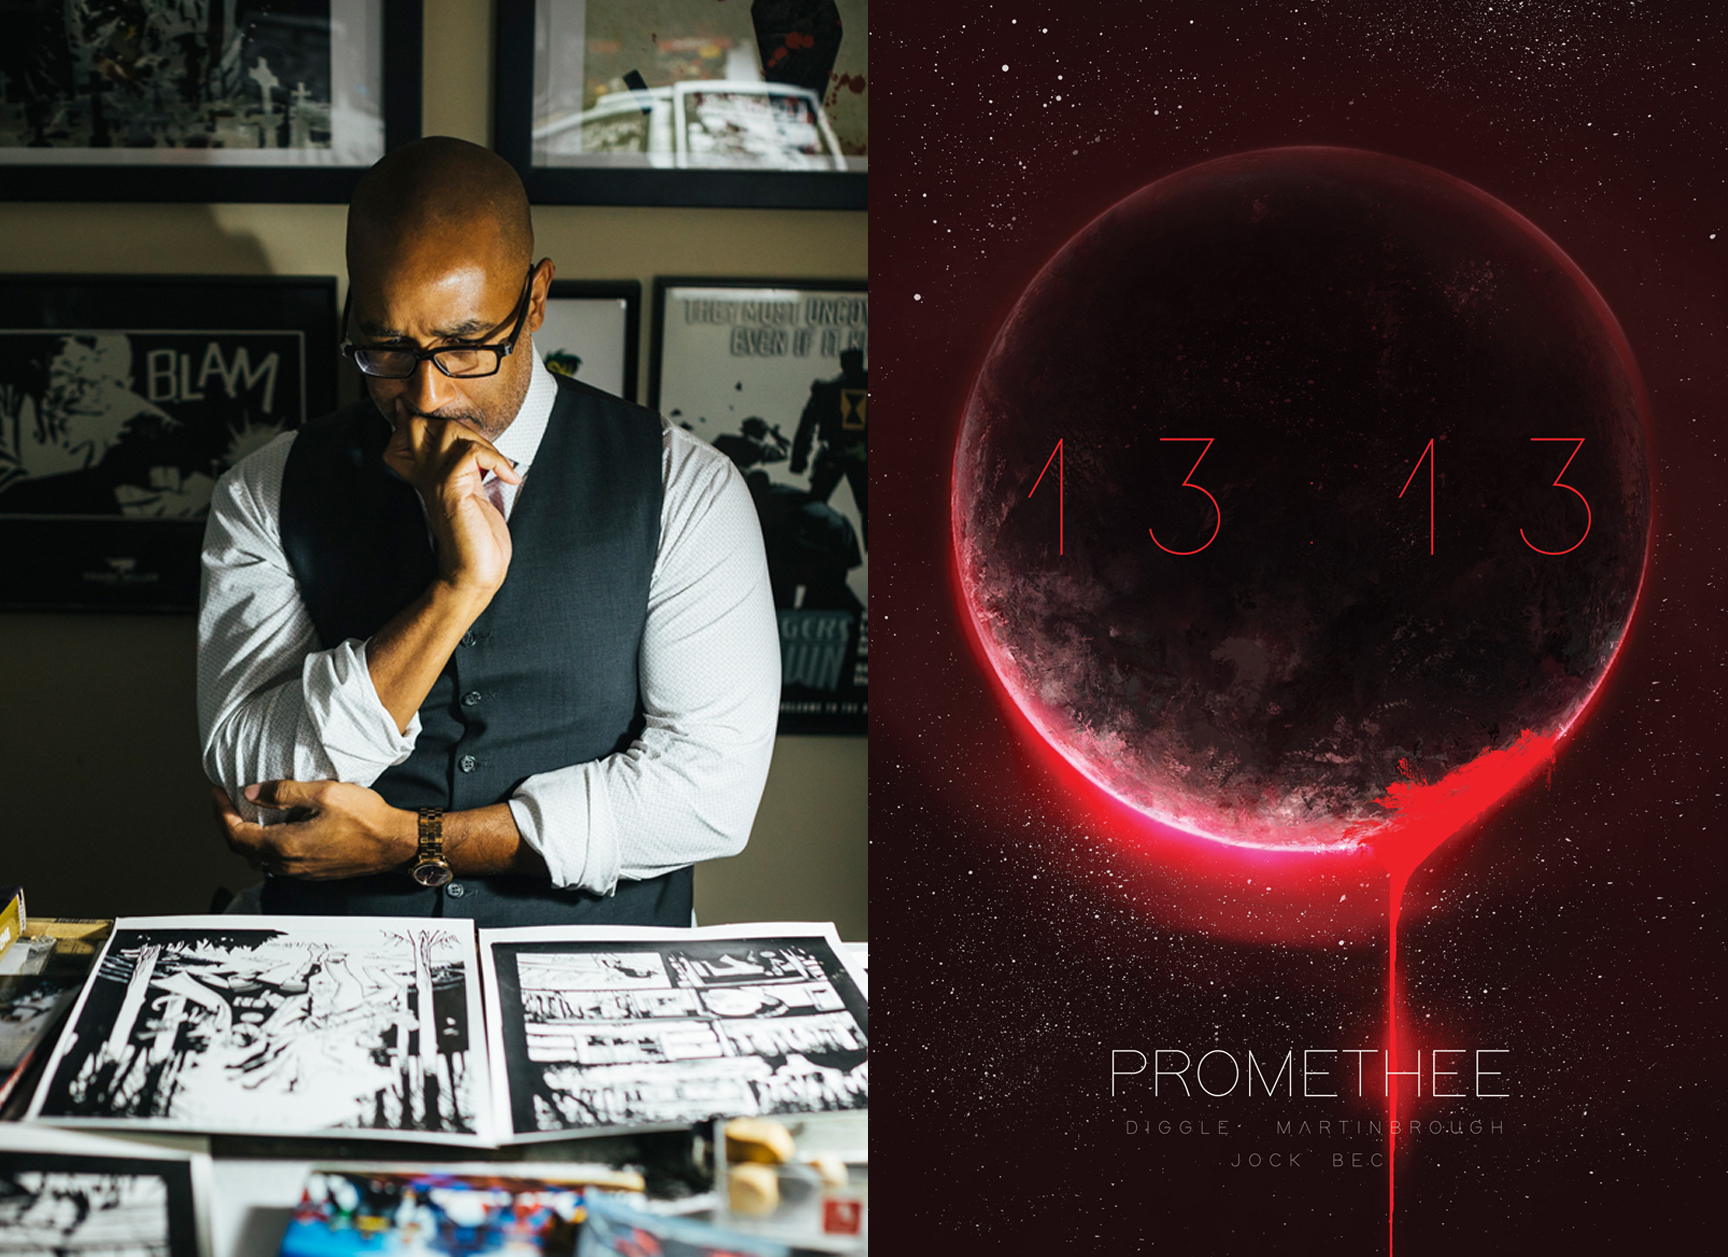 """Left to right: Critically acclaimed artist Shawn Martinbrough and his collaborative new work <em>Prométhée 13:1</em><span class=""""redactor-invisible-space""""><em>3</em><span class=""""redactor-invisible-space"""">. Illustrated by Martinbrough, this comic is a prequel to the series of French graphic novels """"Prométhée"""" by artist Christophe Bec.<span class=""""redactor-invisible-space""""> Illustration courtesy of the artist.</span></span></span>"""